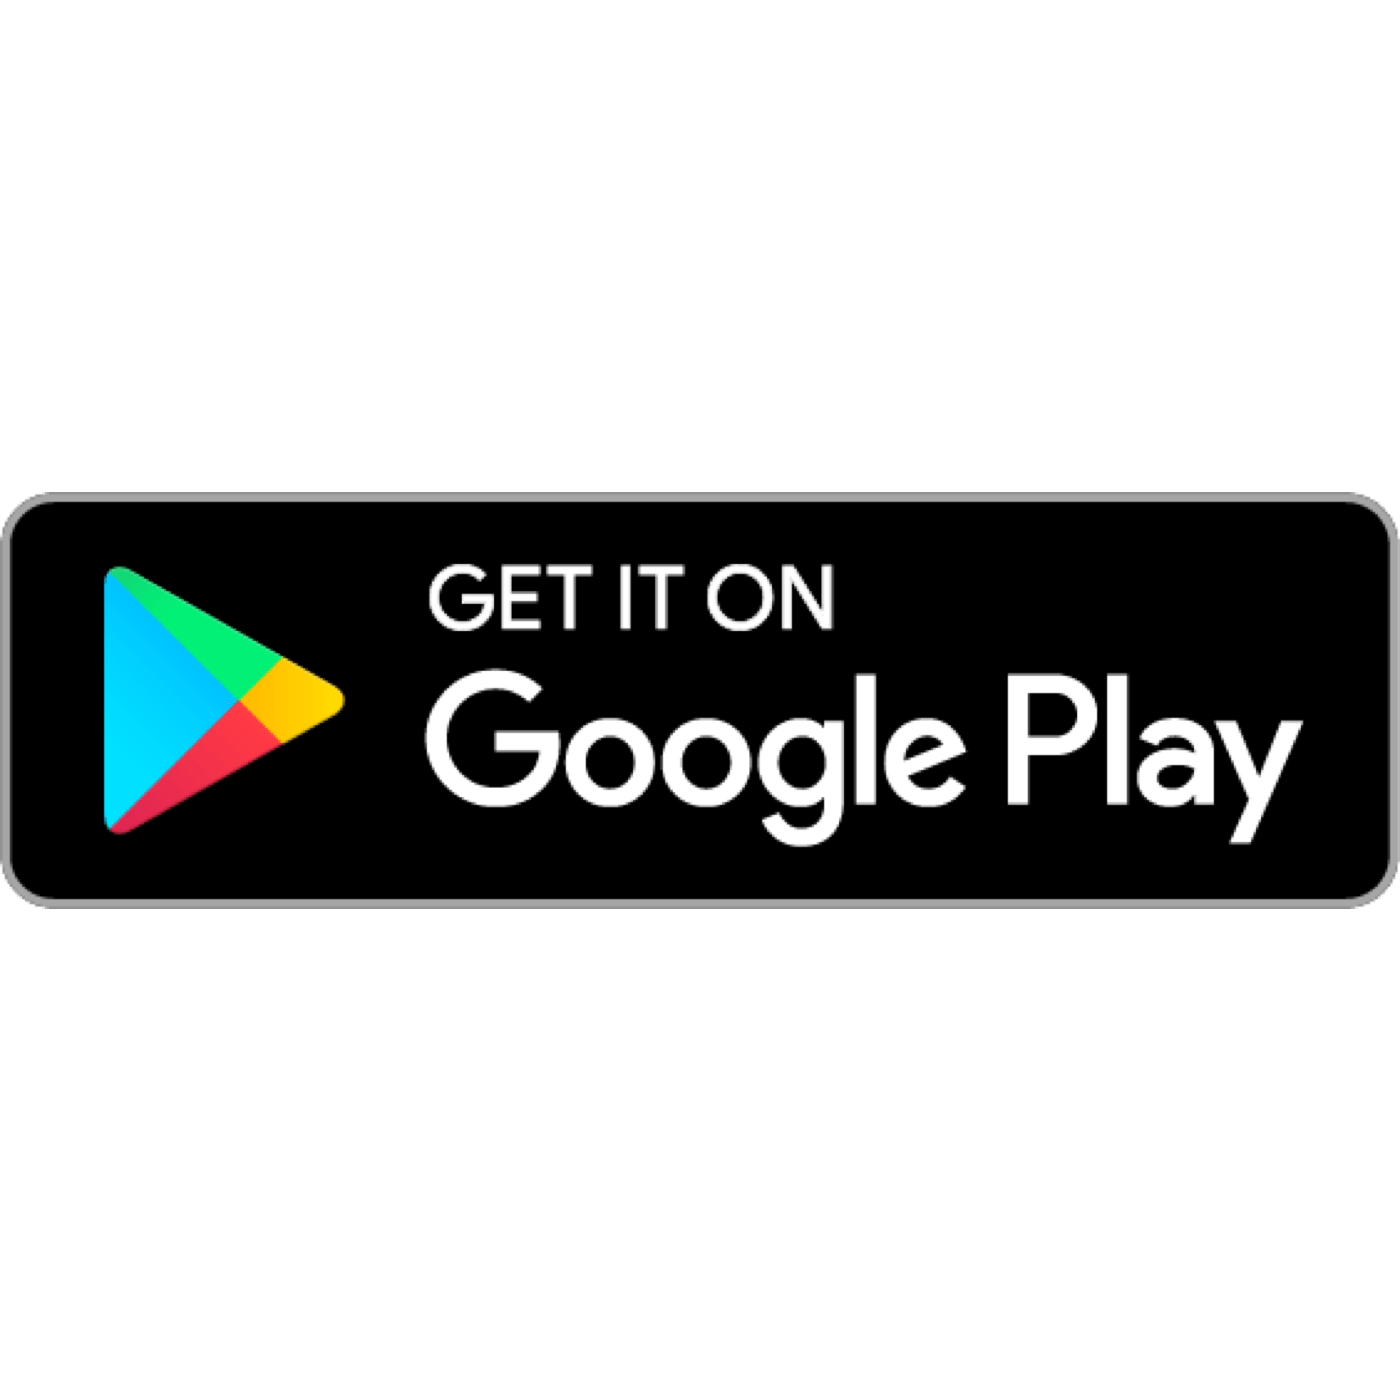 Google Play Android App Store.